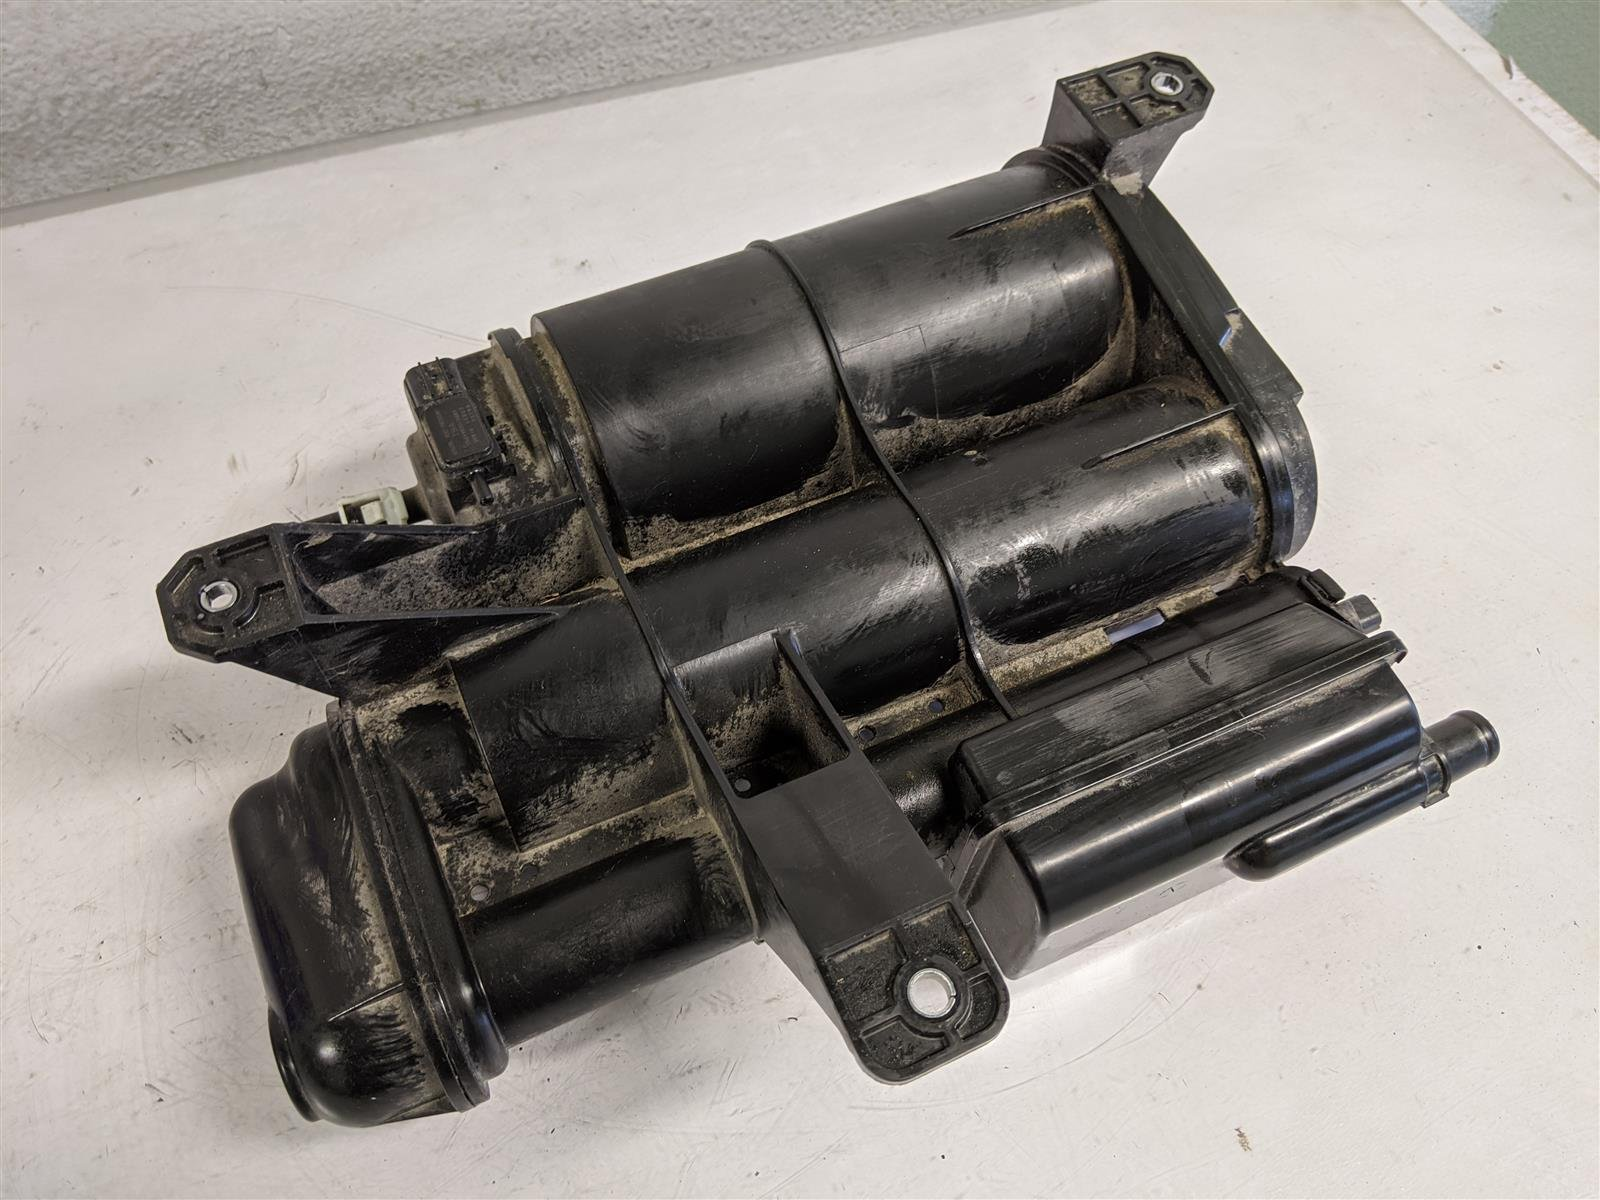 2018 Honda Civic Charcoal Canister Replacement